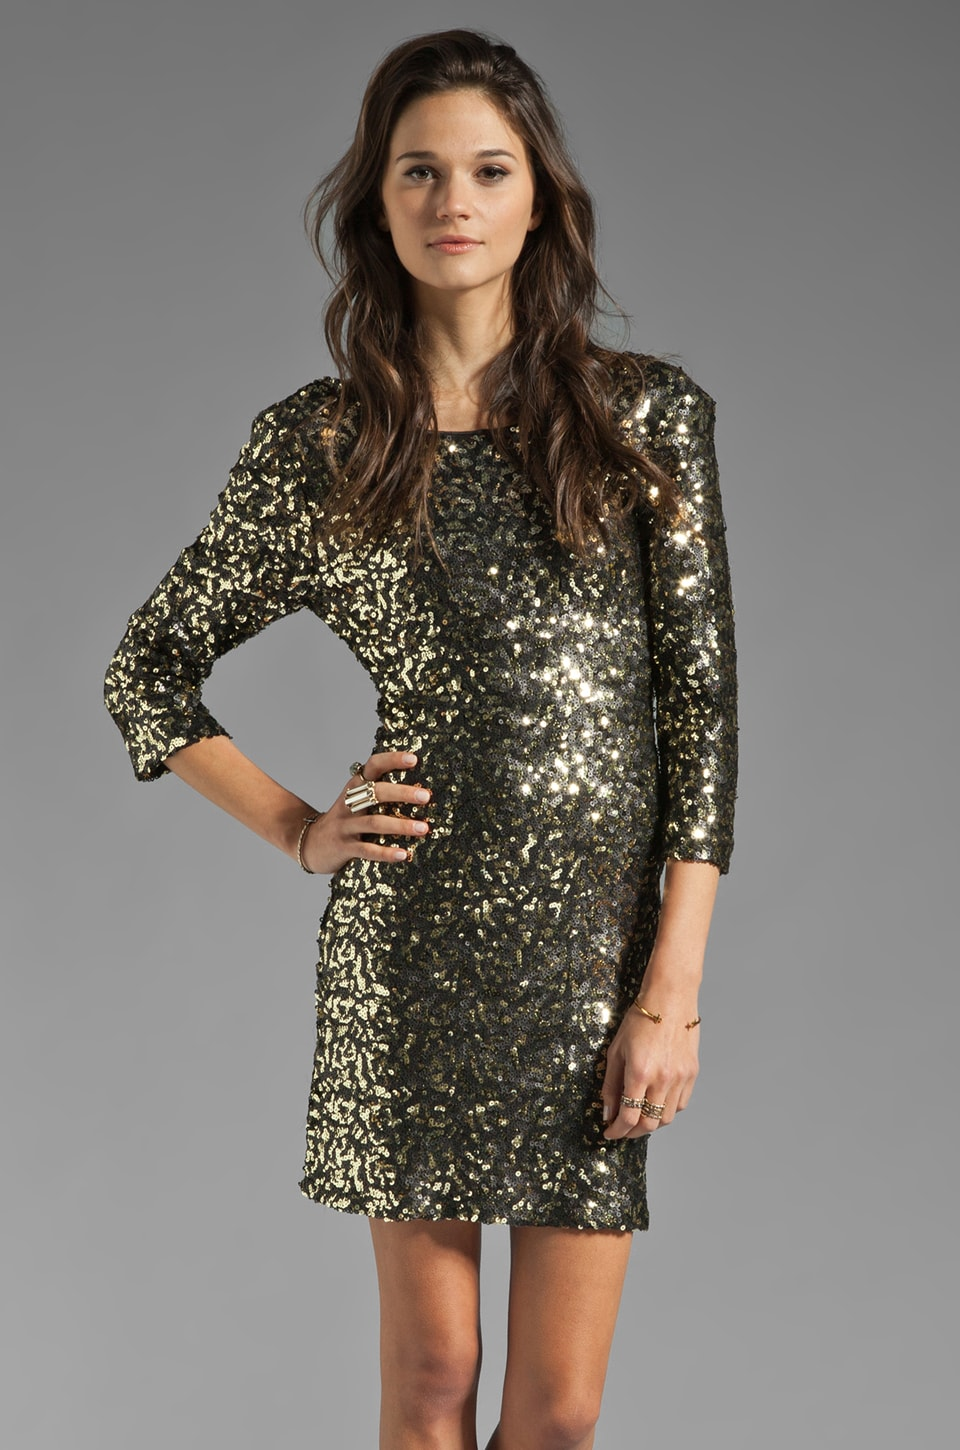 MM Couture by Miss Me 3/4 Sleeve Sequin Dress in Gold/Black